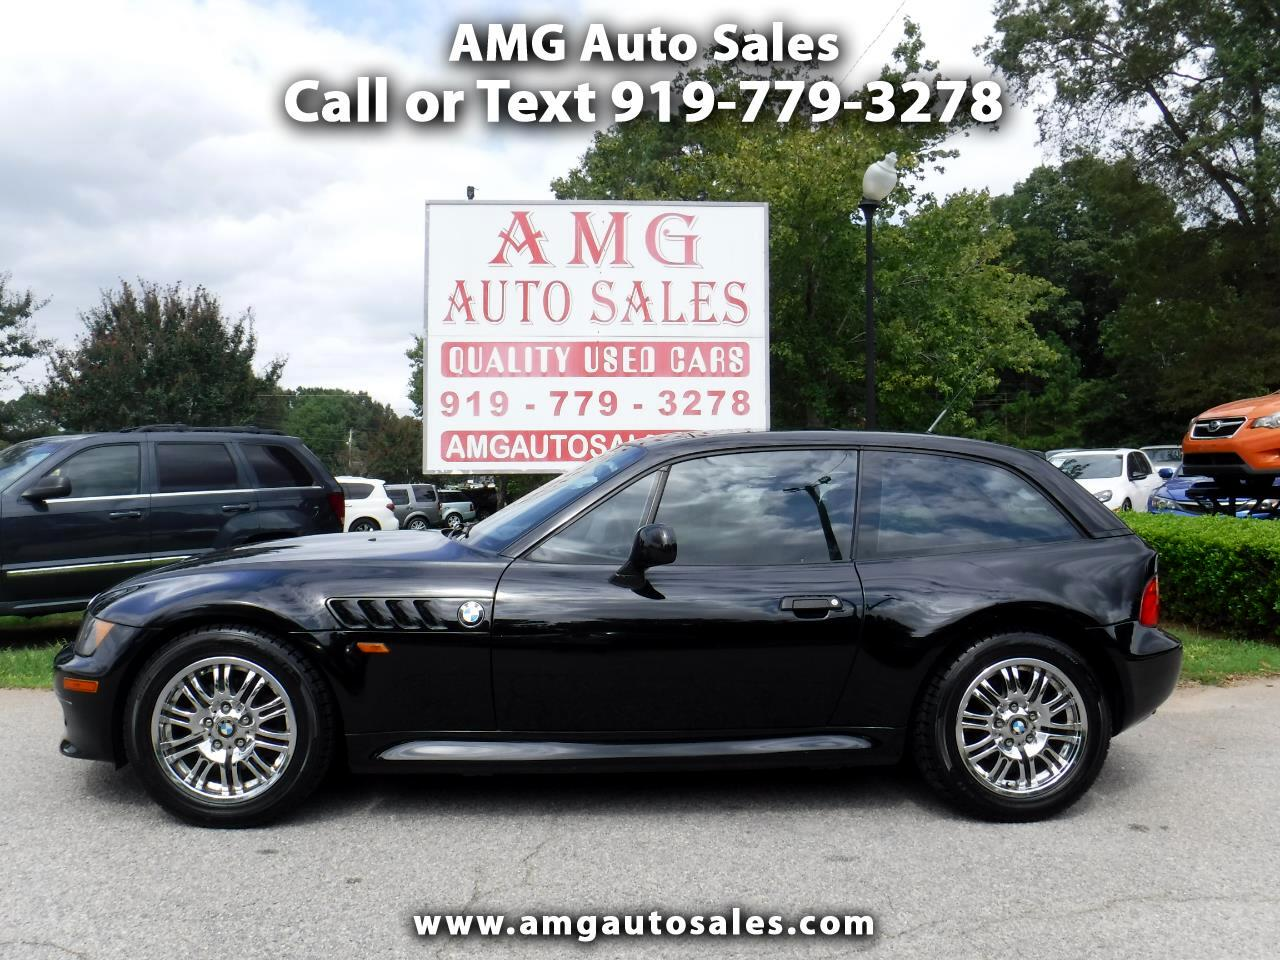 Used Cars In Raleigh Nc >> Used Cars For Sale Raleigh Nc 27603 Amg Auto Sales